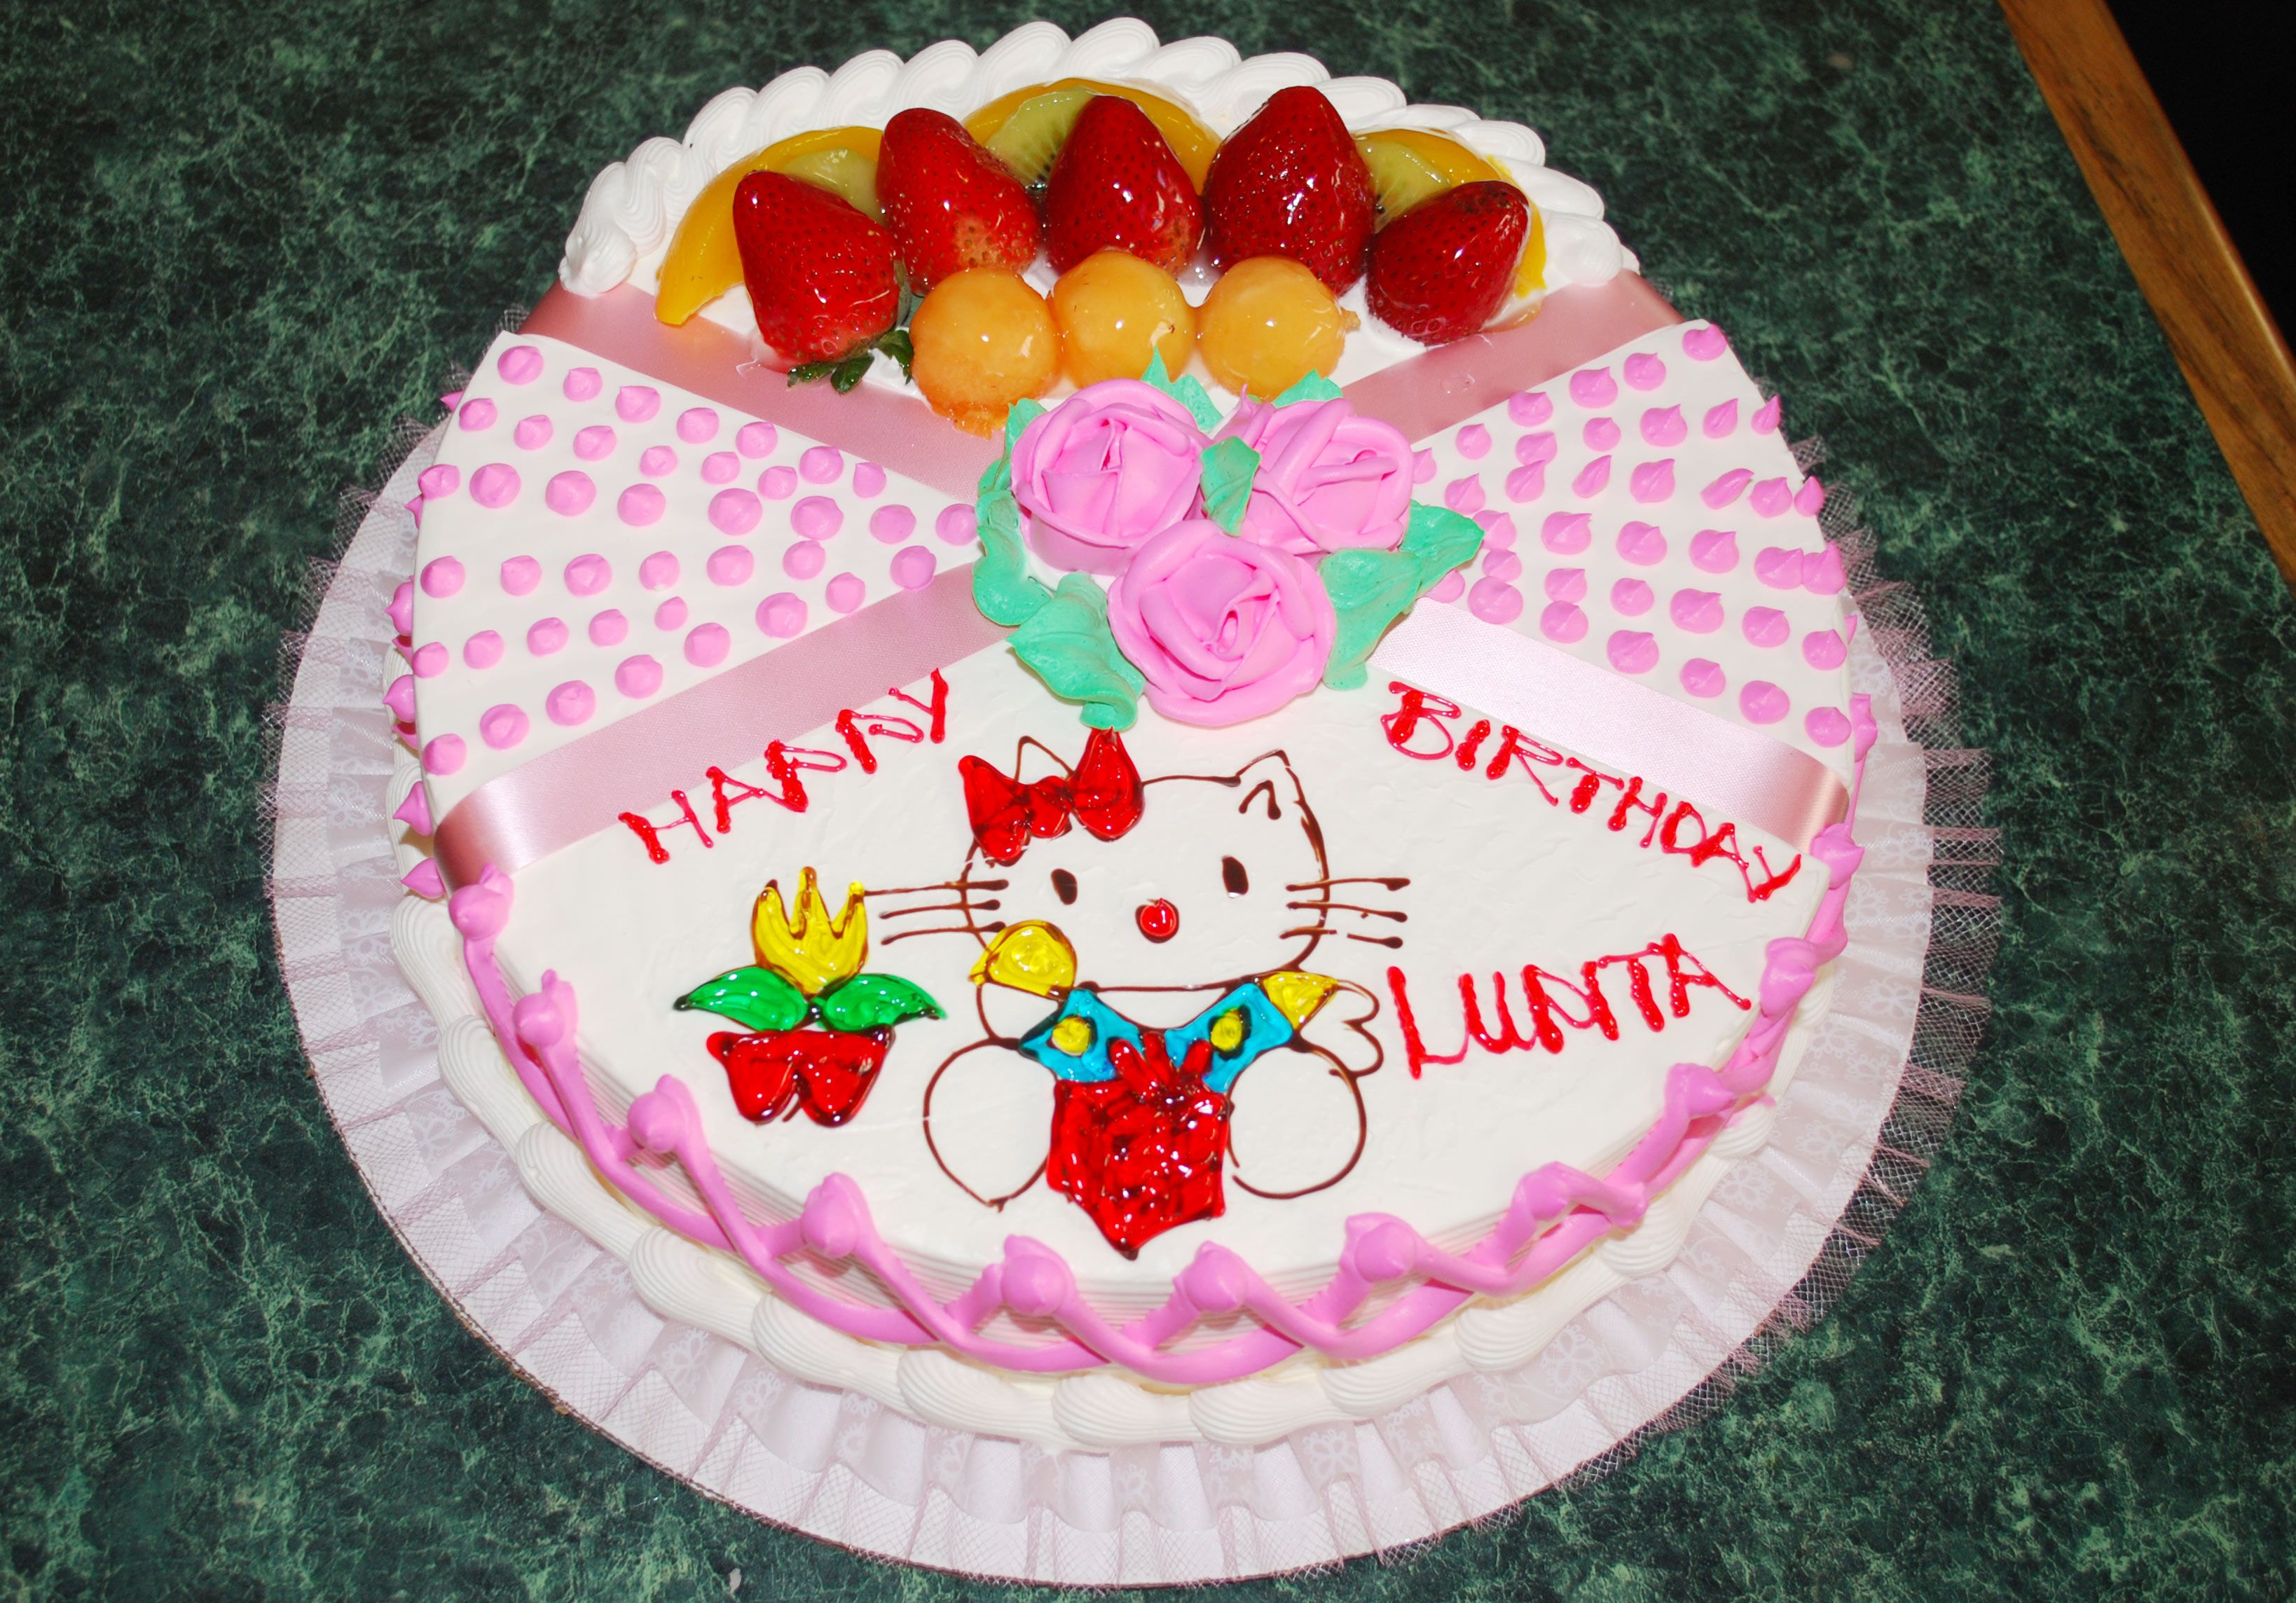 kids cakes designs | By leo |June 16, 2011 | Full size is 3277 × 2288 pixels